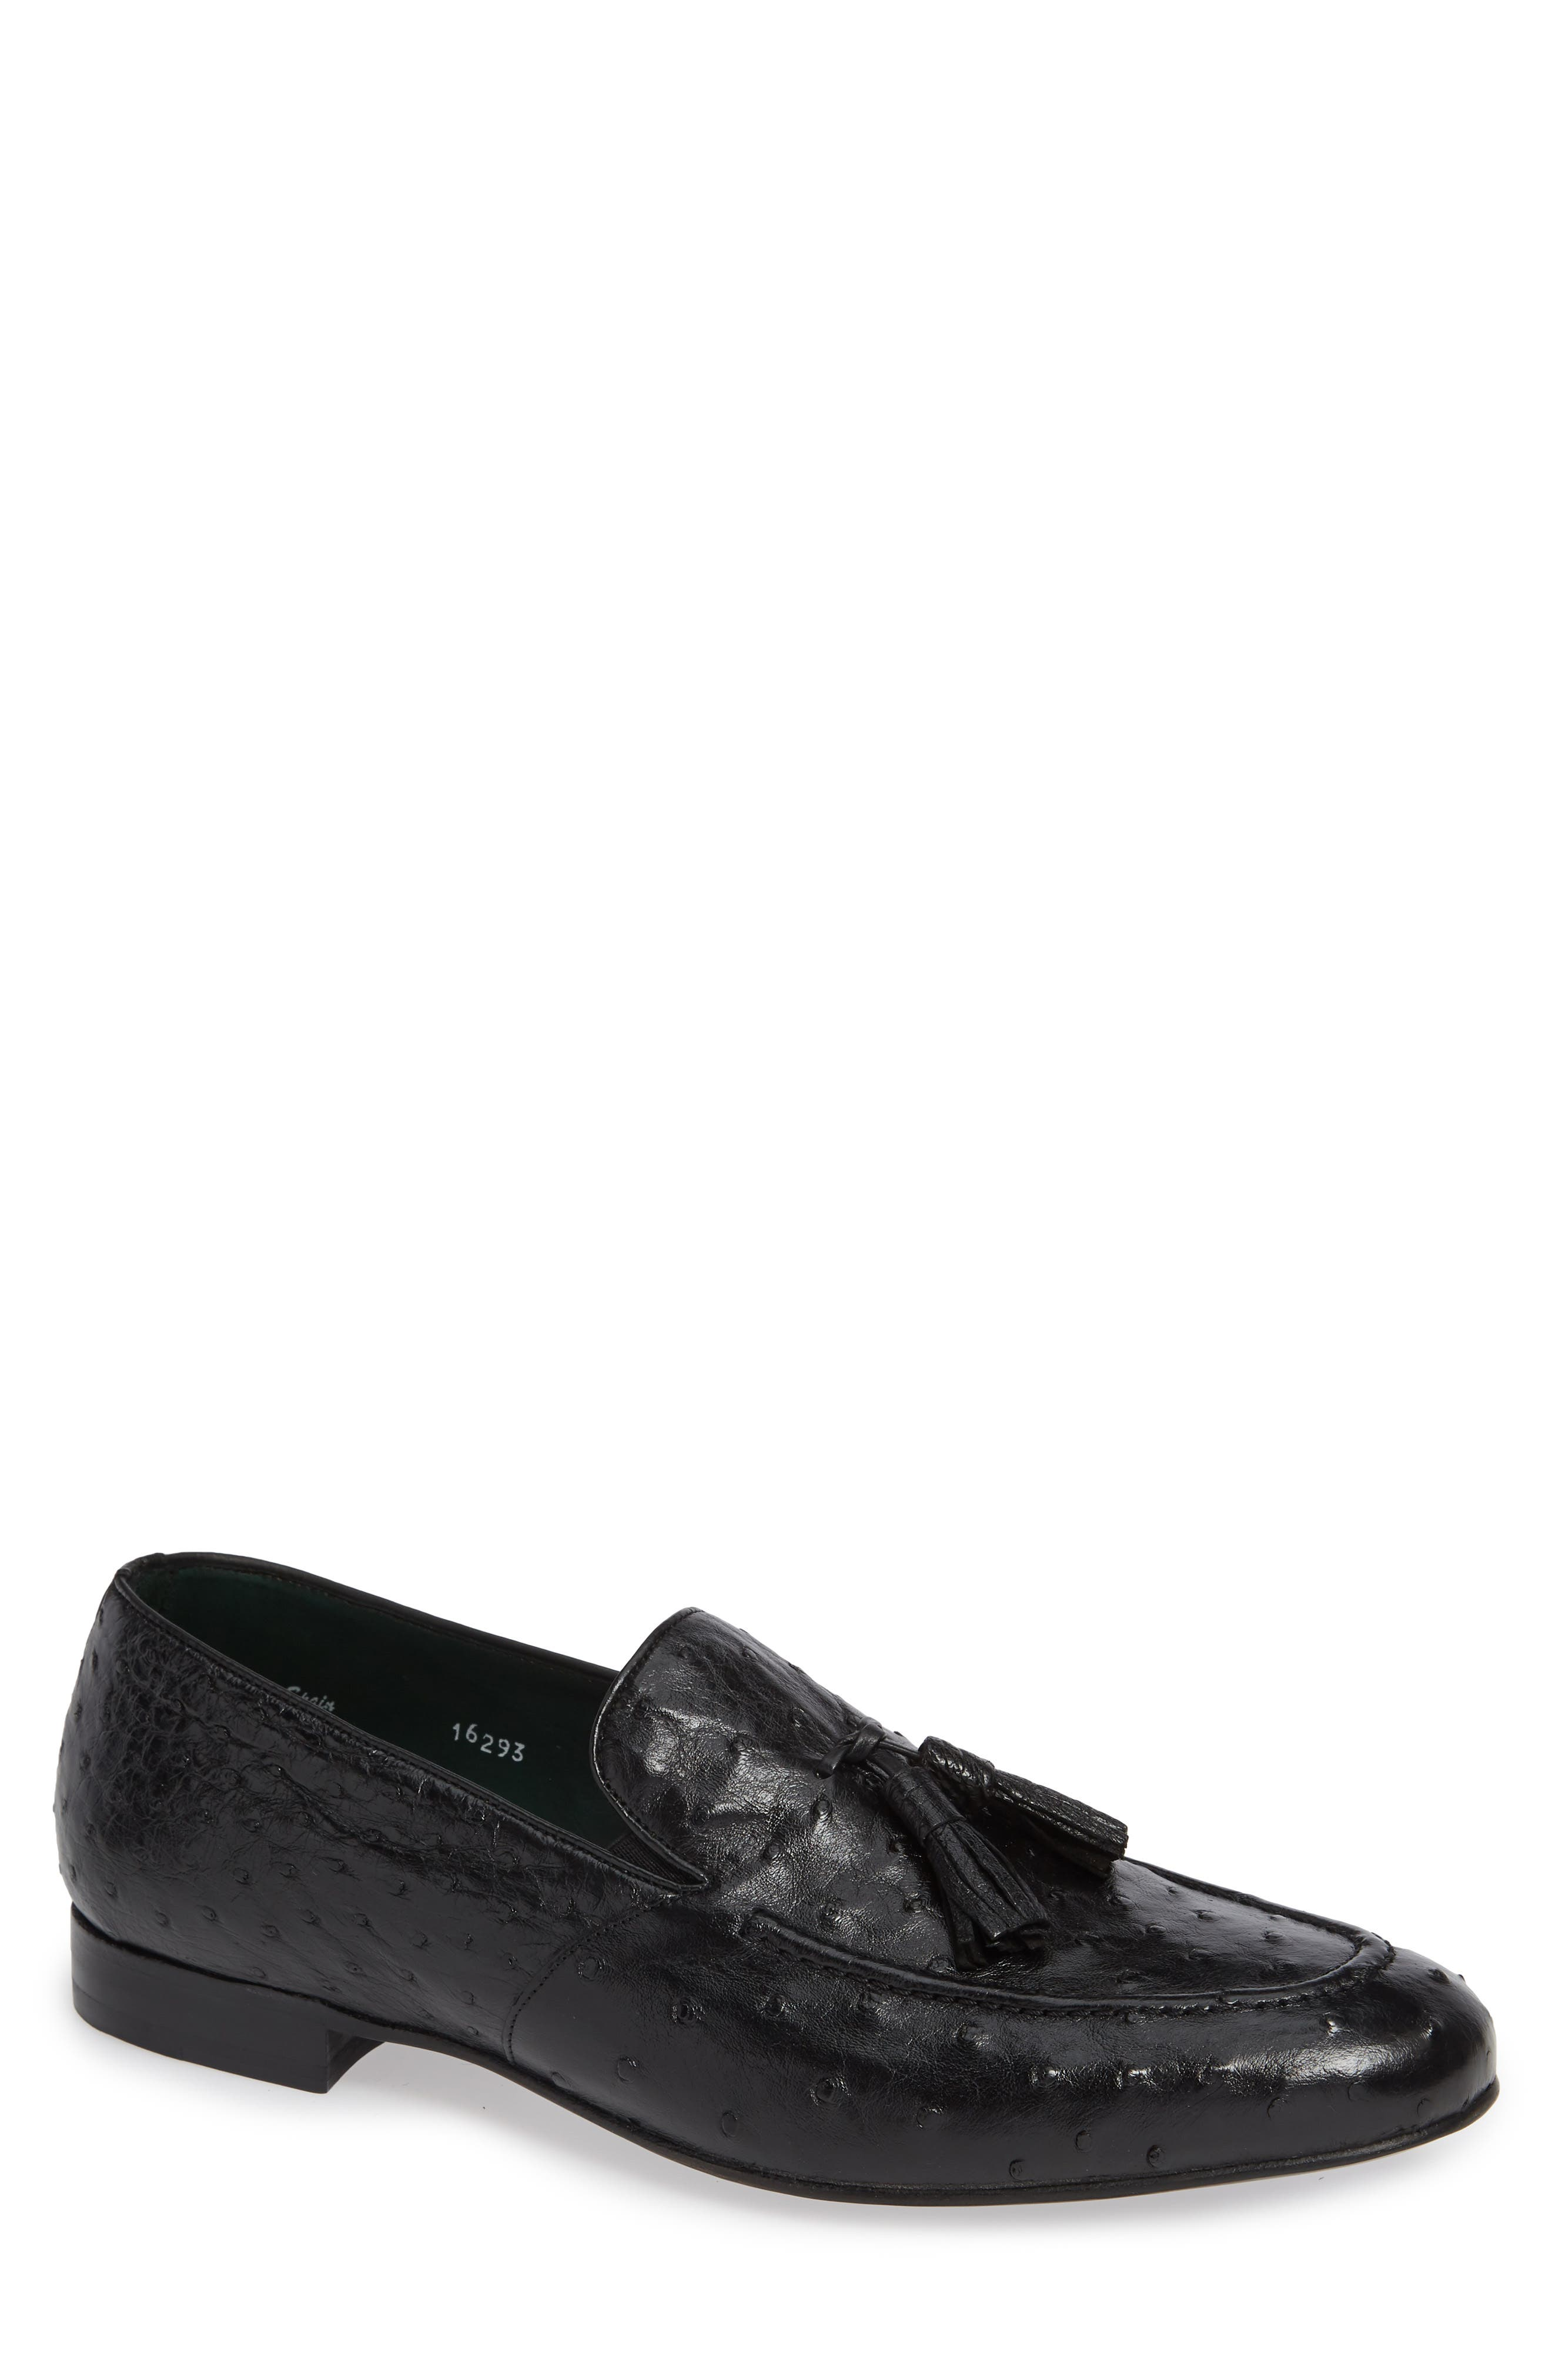 Conte Tassel Ostrich Leather Loafer,                             Main thumbnail 1, color,                             BLACK LEATHER